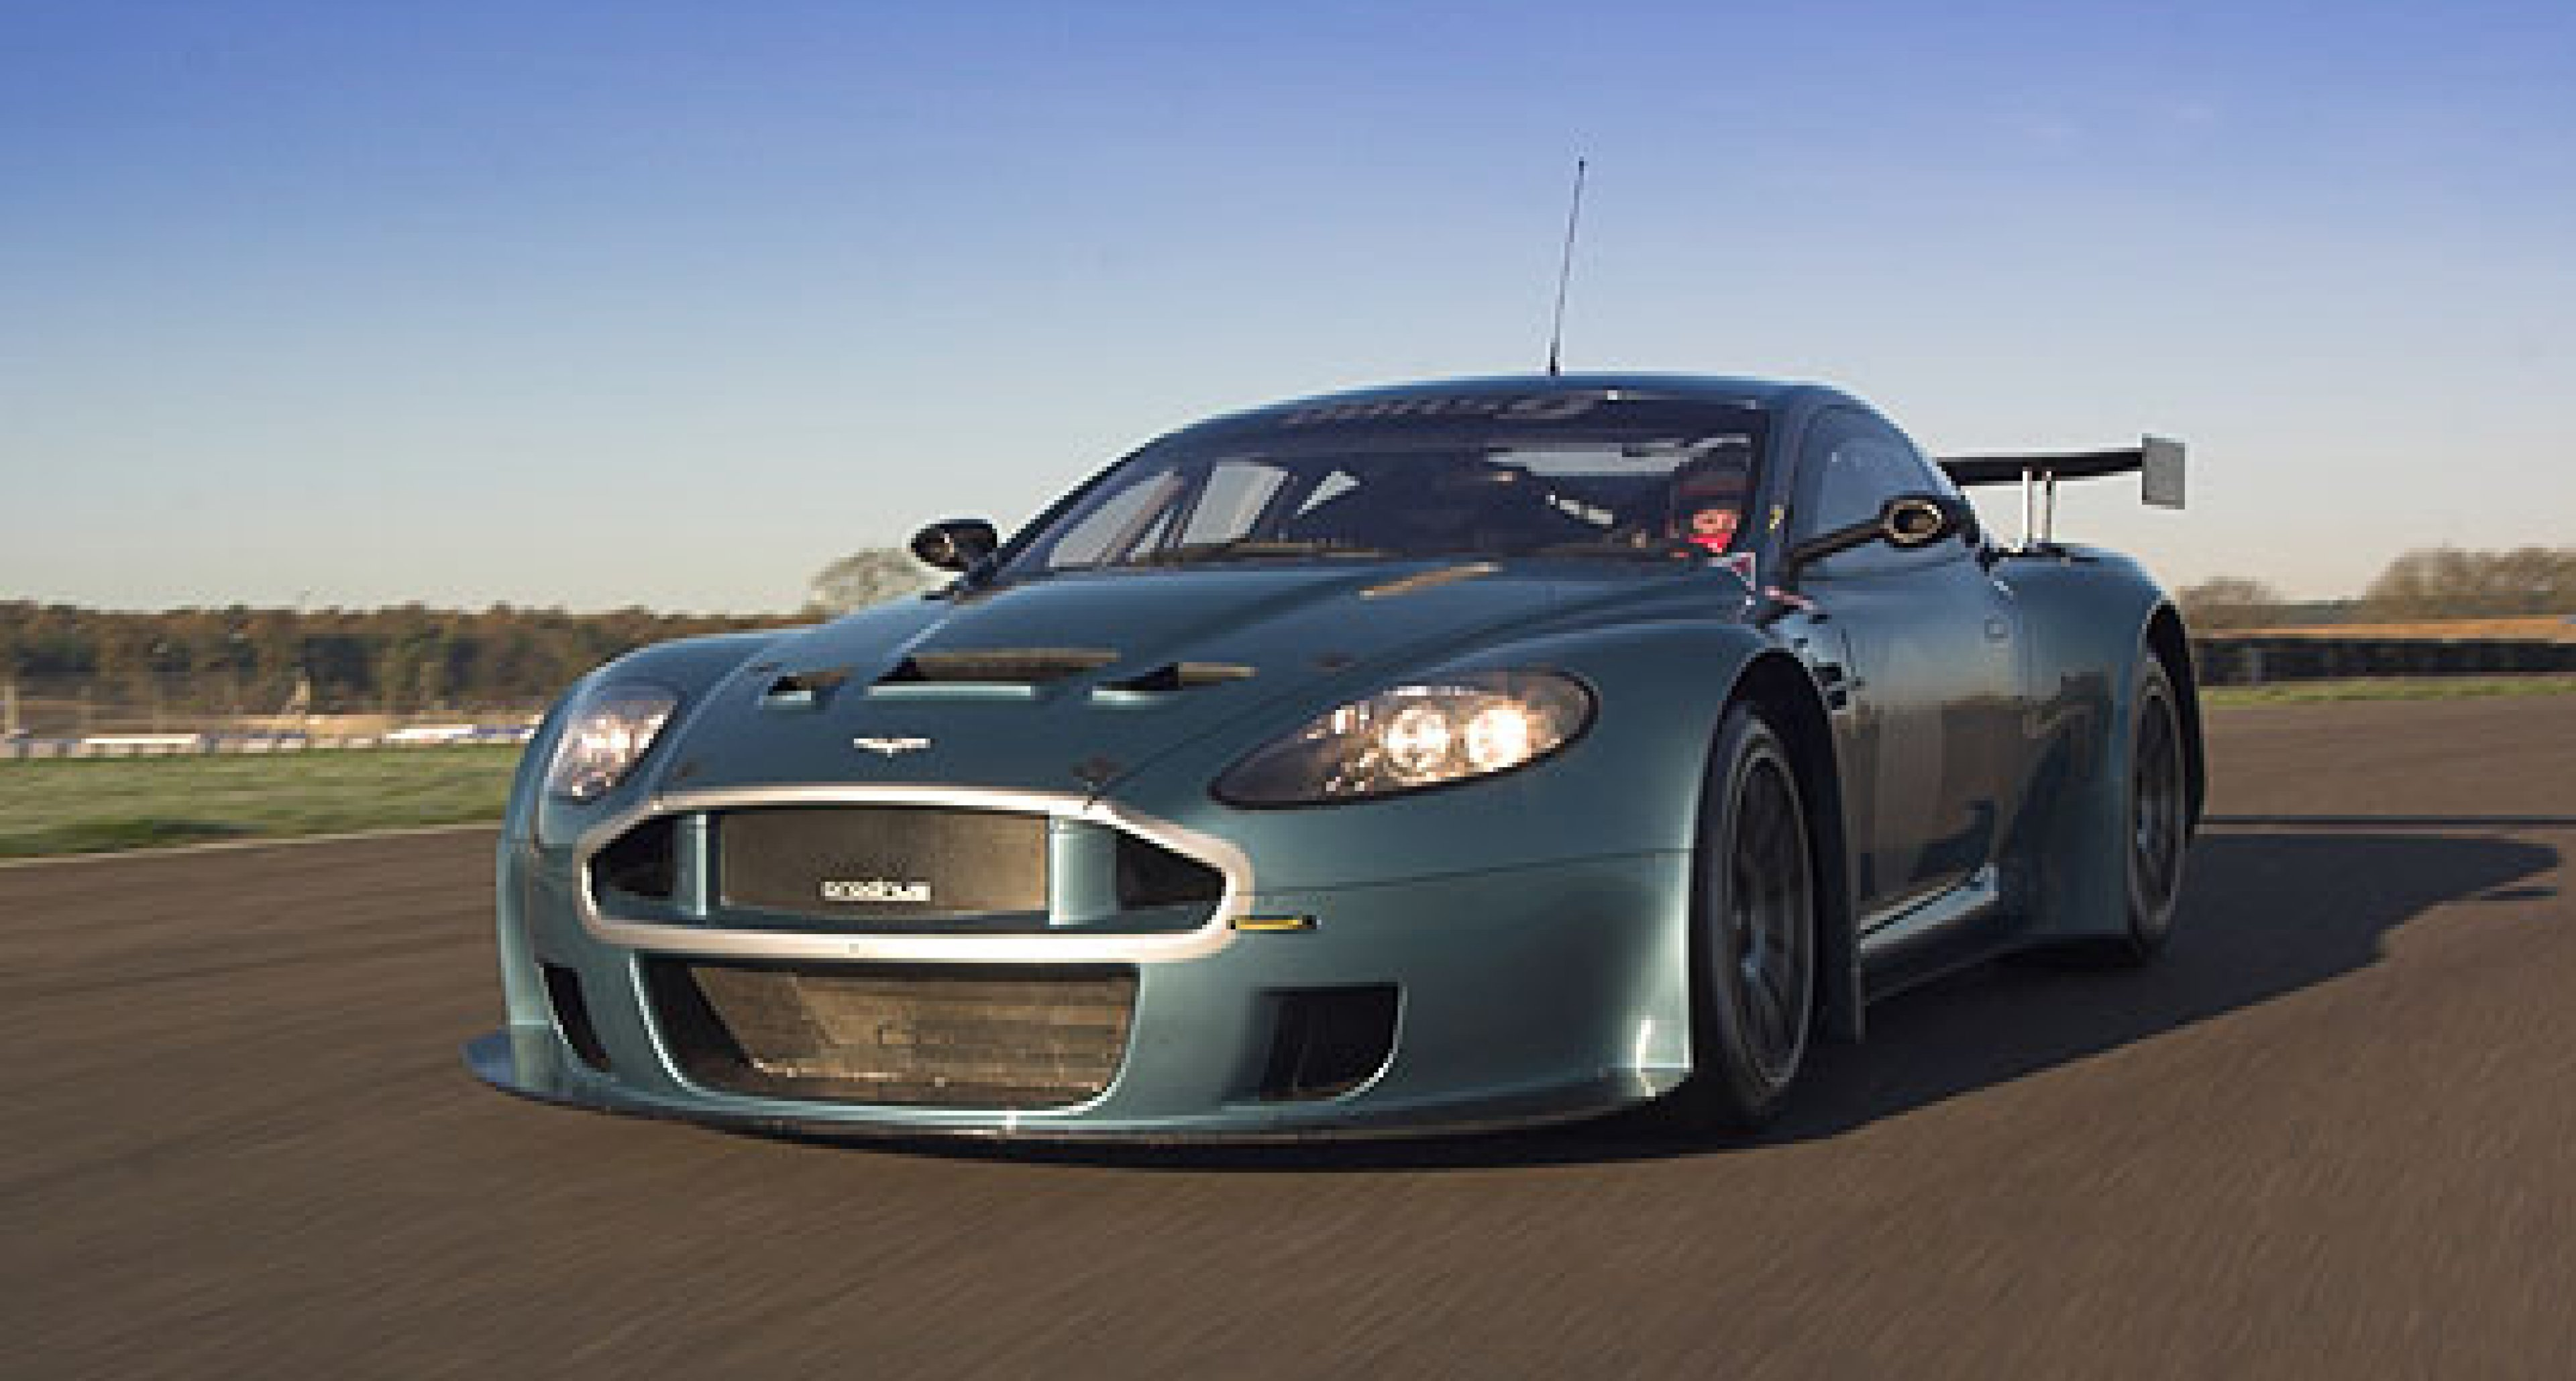 The Prodrive at Goodwood Aston Martin and Rally Stage Experience